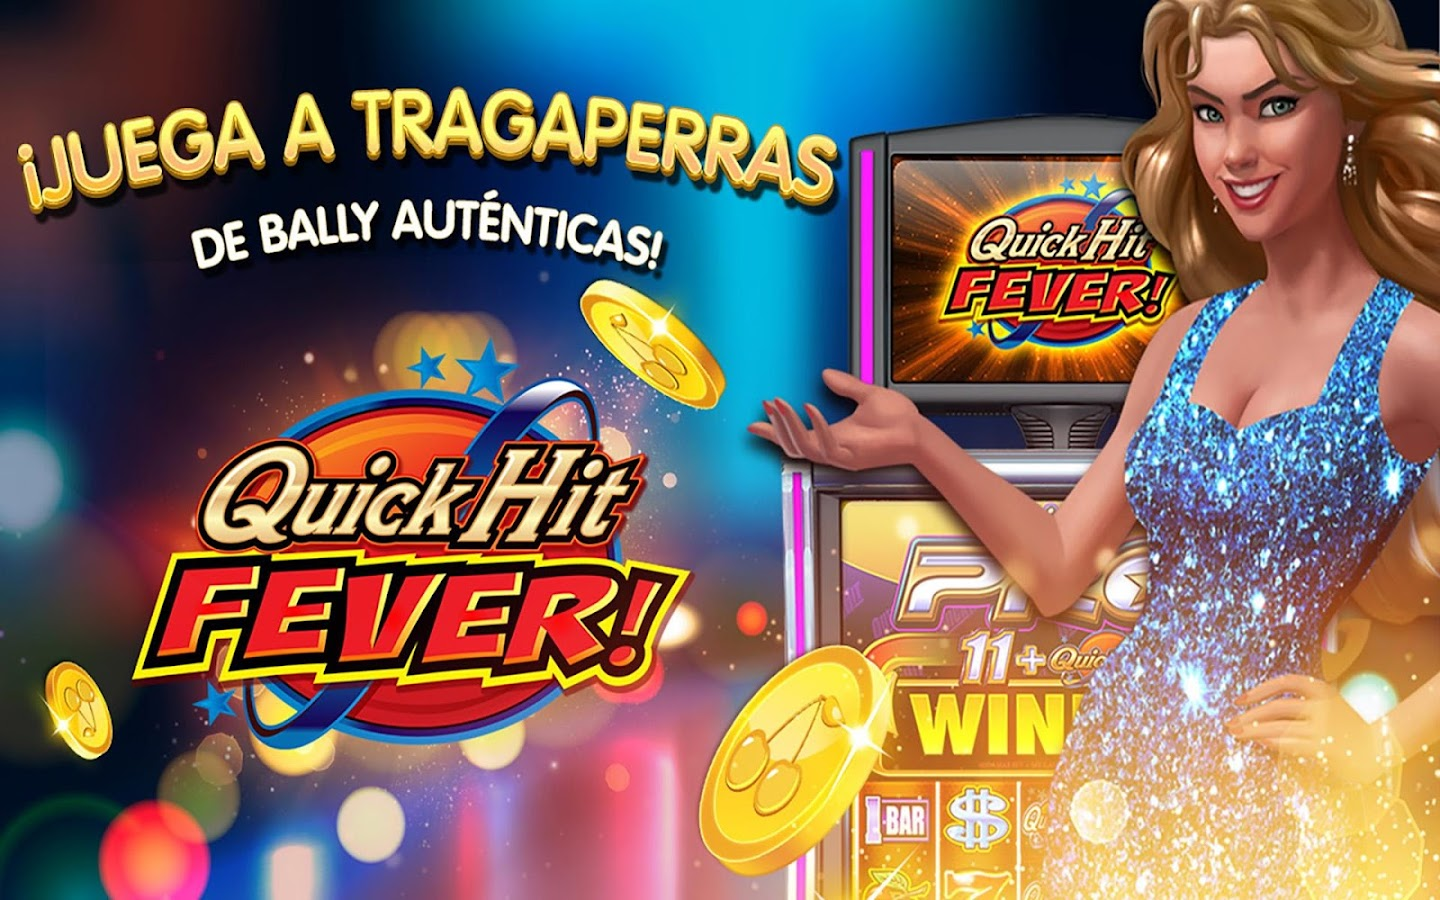 Quick Hit máchinas tragamonedas gratis en Bally Casinos en línea